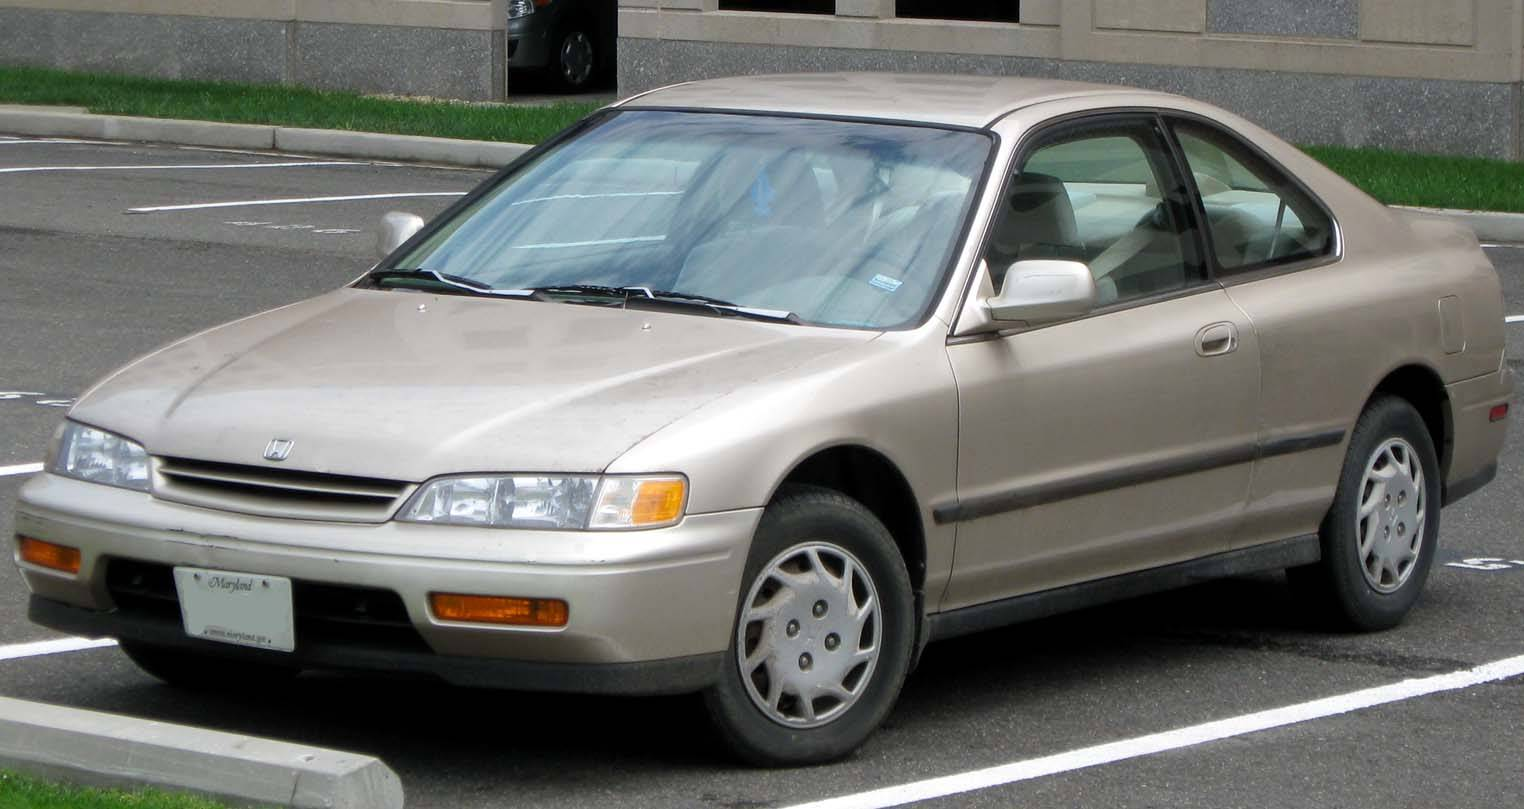 1994 Honda Accord Lx Wagon 2 2l Manual